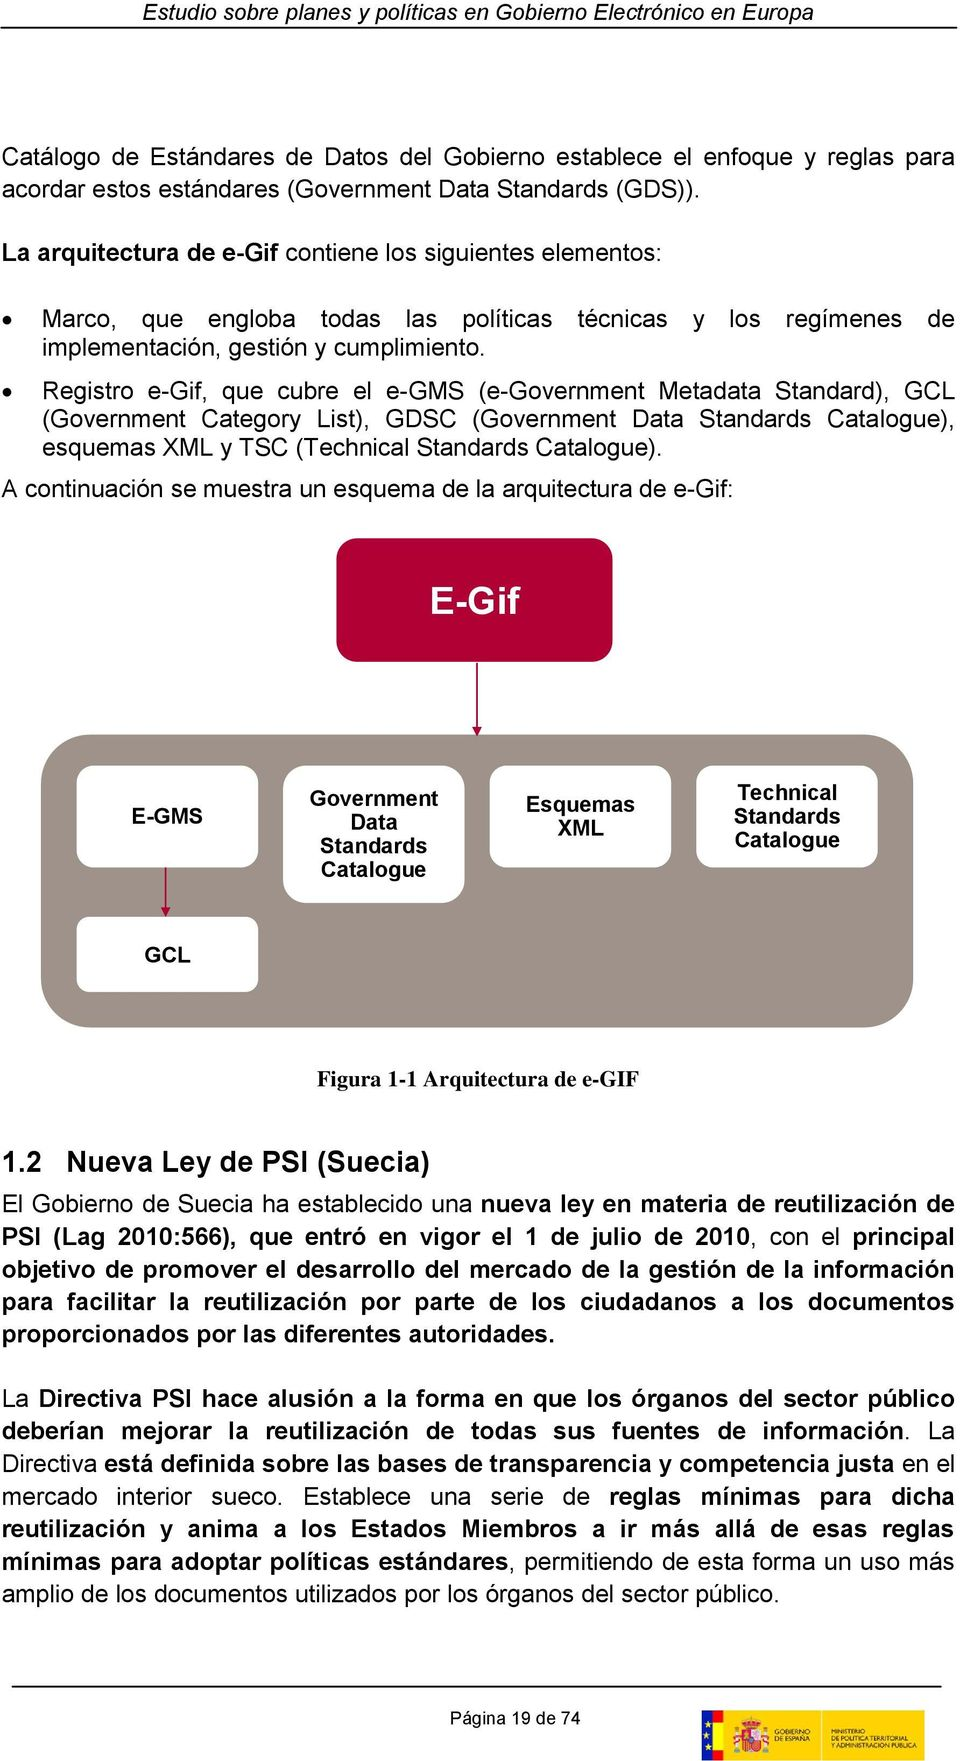 Registro e-gif, que cubre el e-gms (e-government Metadata Standard), GCL (Government Category List), GDSC (Government Data Standards Catalogue), esquemas XML y TSC (Technical Standards Catalogue).